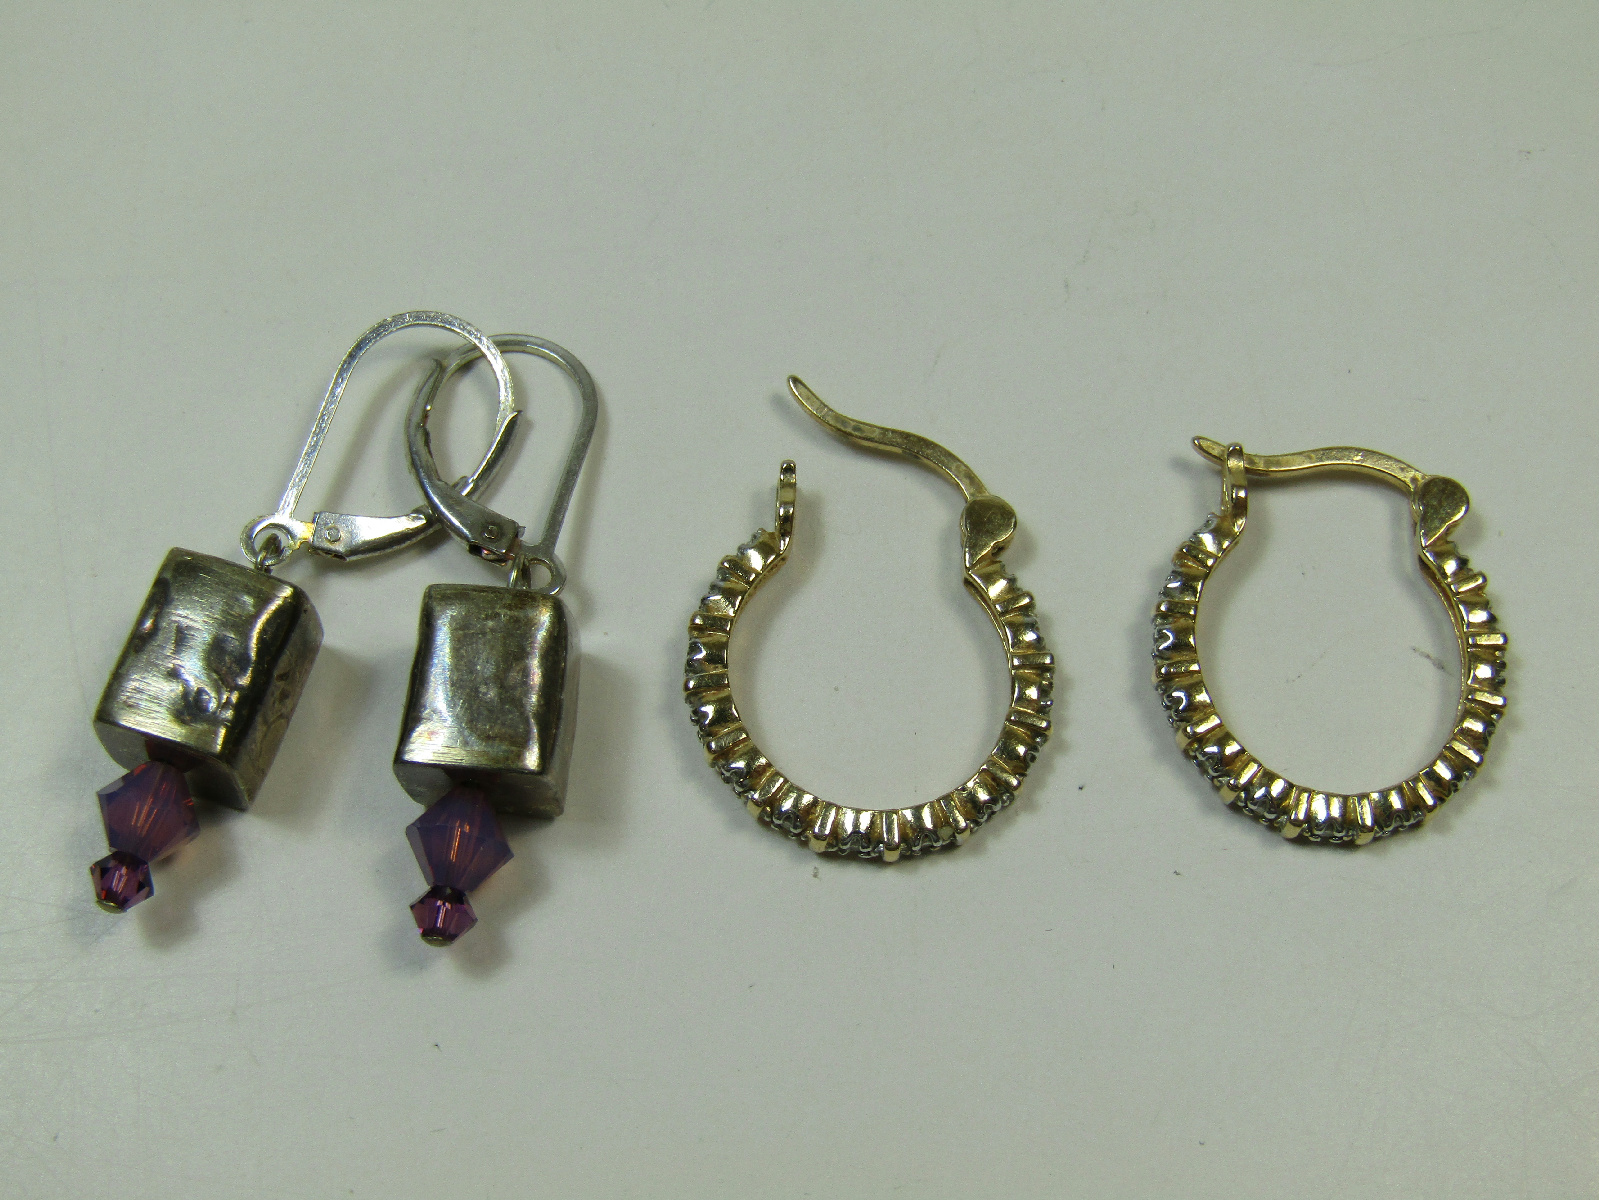 failed magnet test sterling silver jewelry lot ring charm